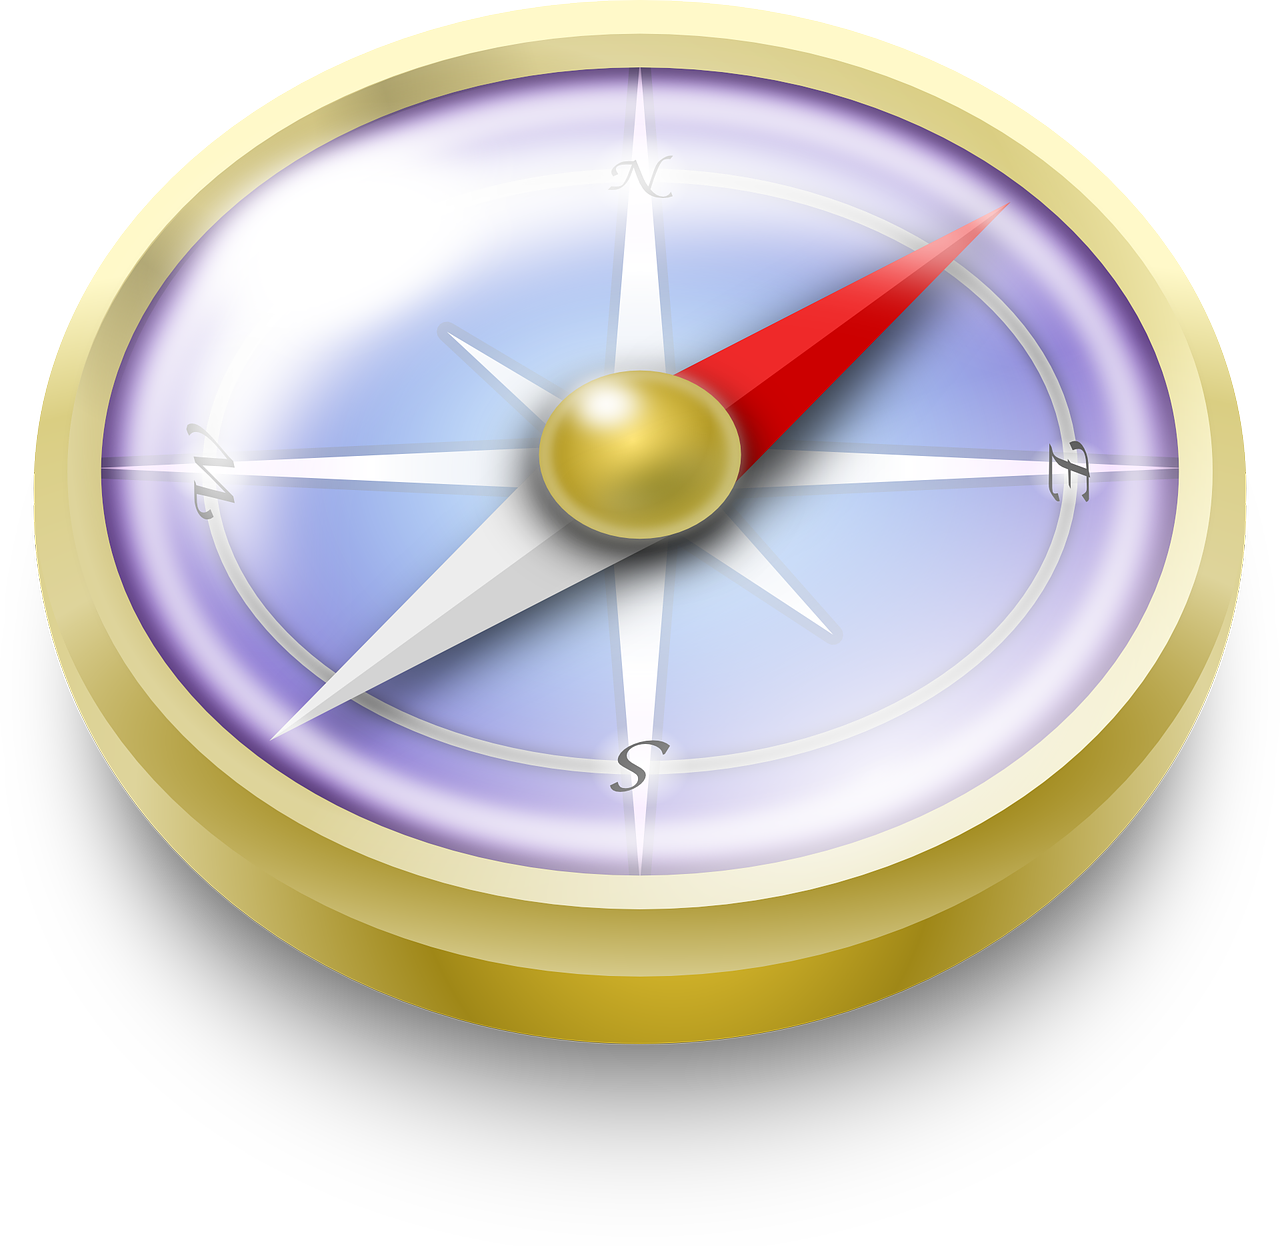 Clocks clipart retirement. Options featured in the